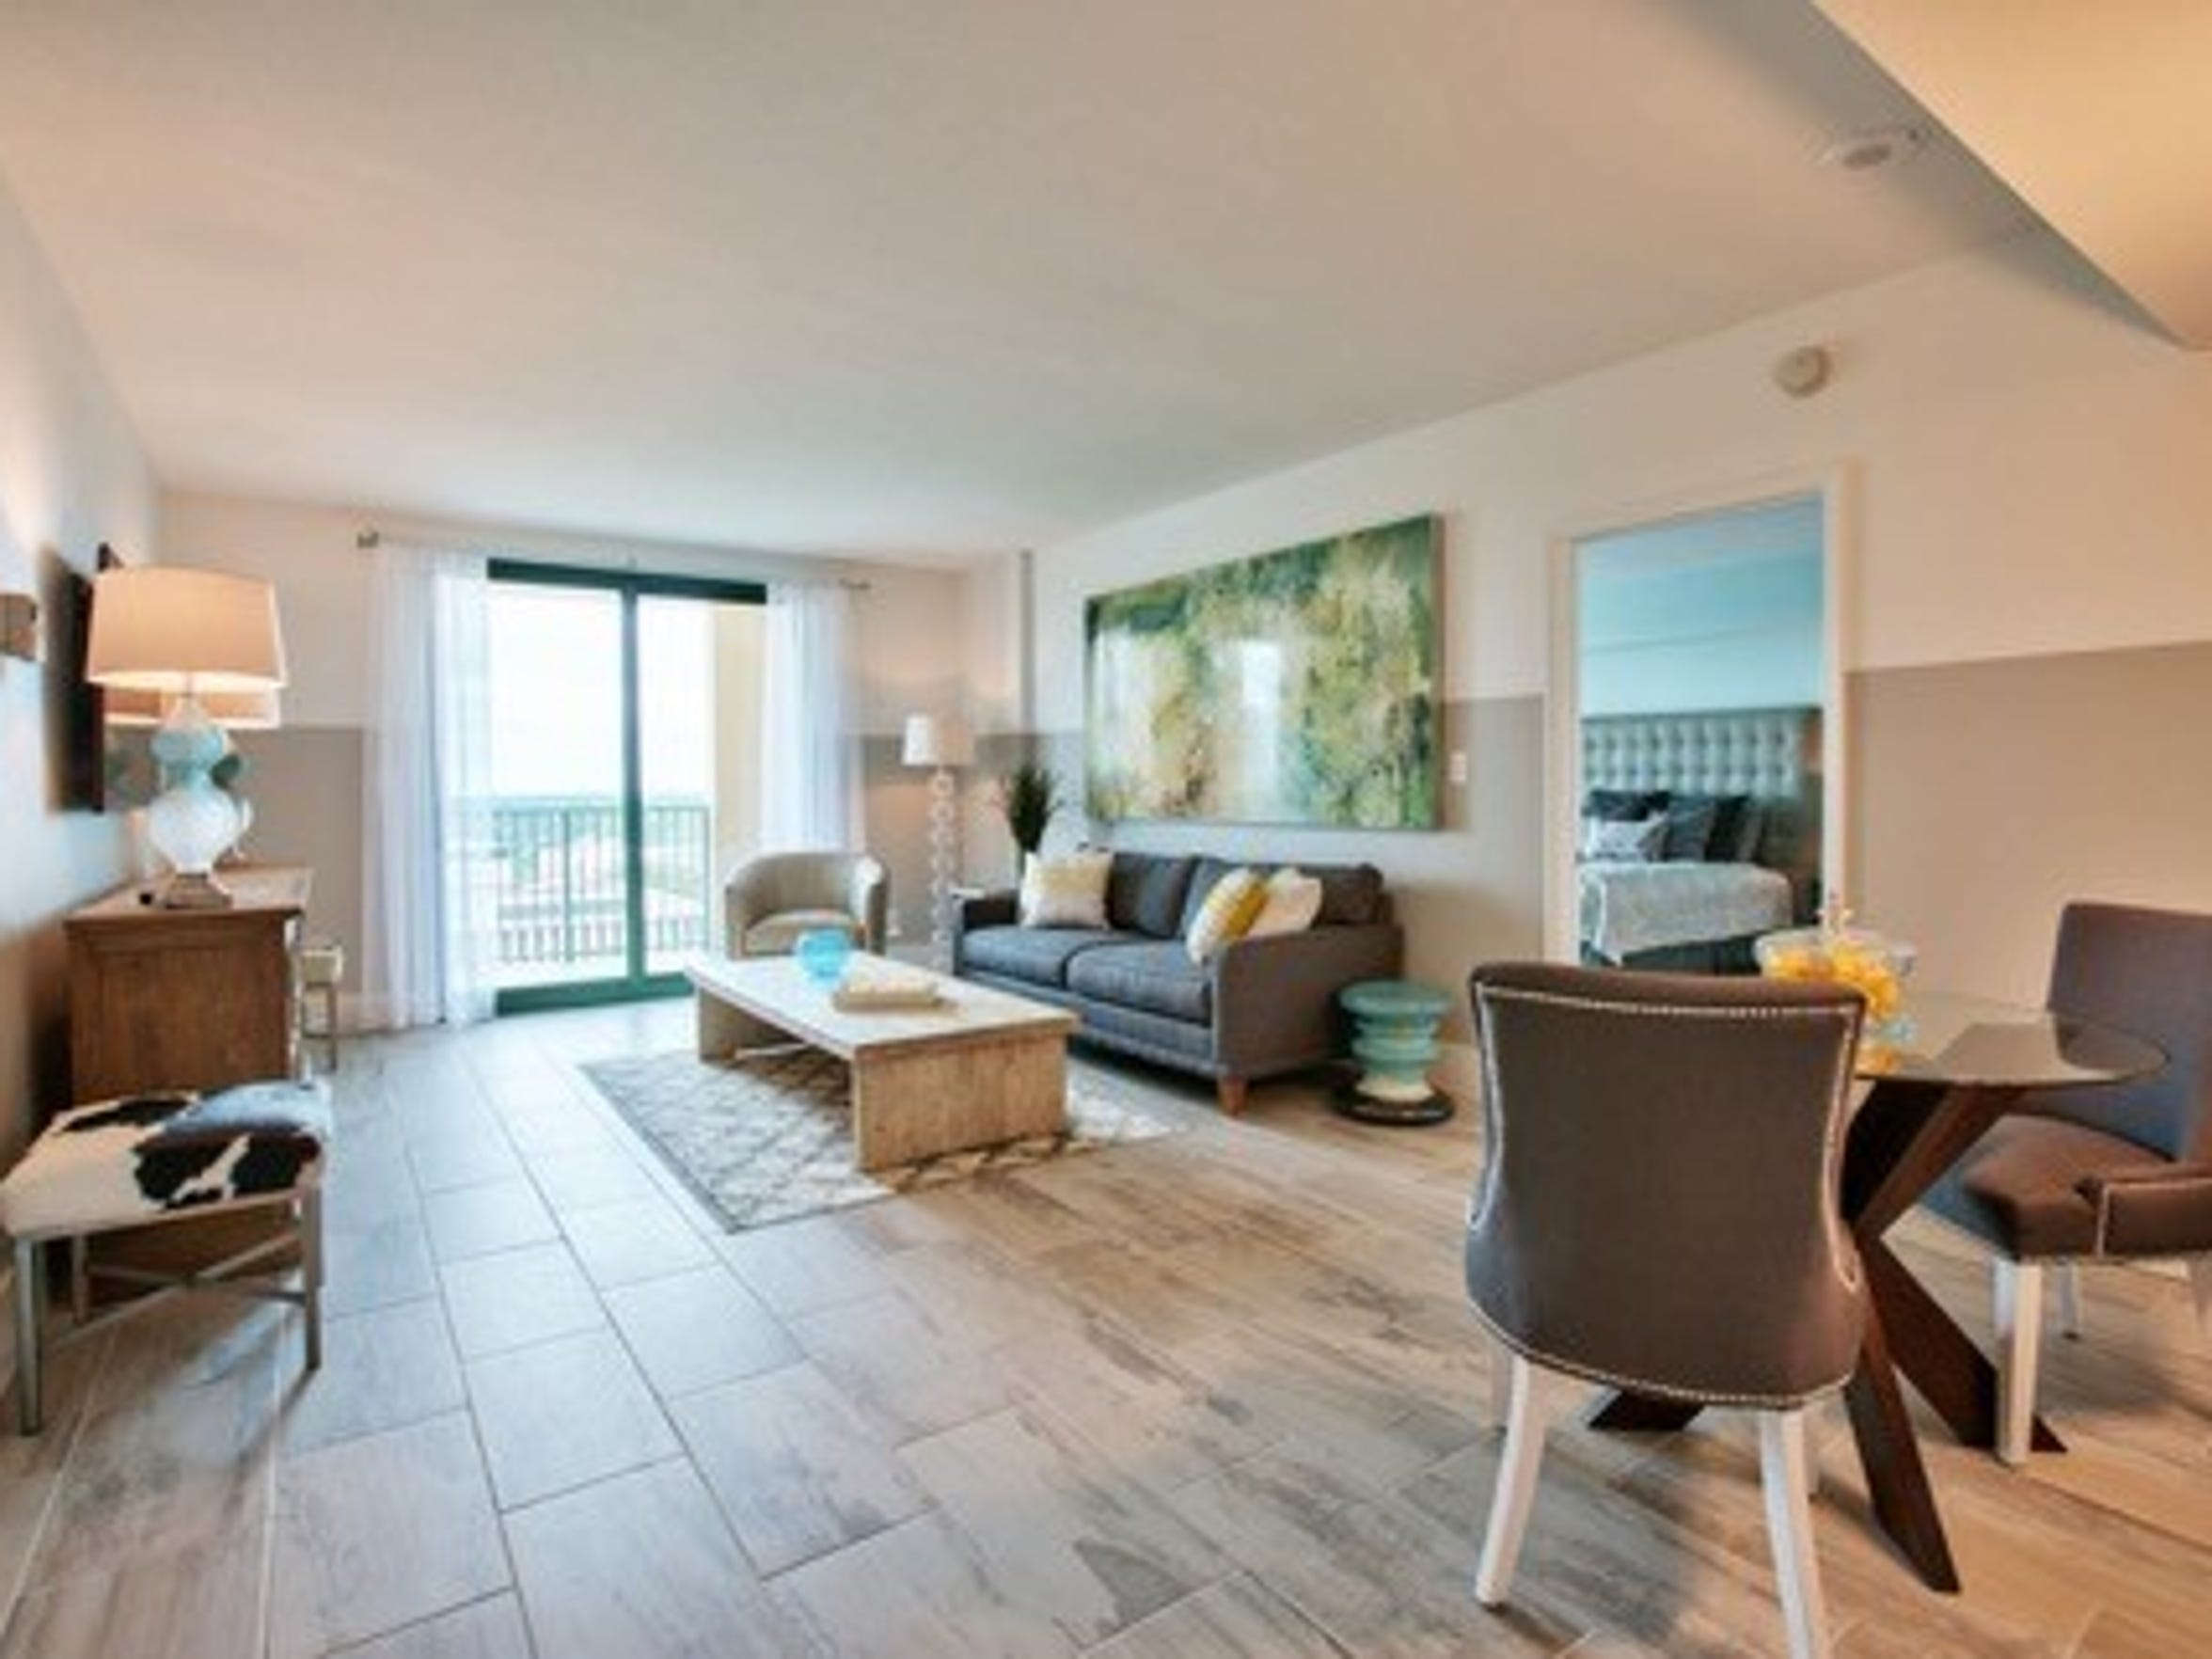 Here's a model unit at the Plaza Tower with staged furniture. For years, the high-rise didn't sell any units but an ambitious marketing plan hopes to turn things around.